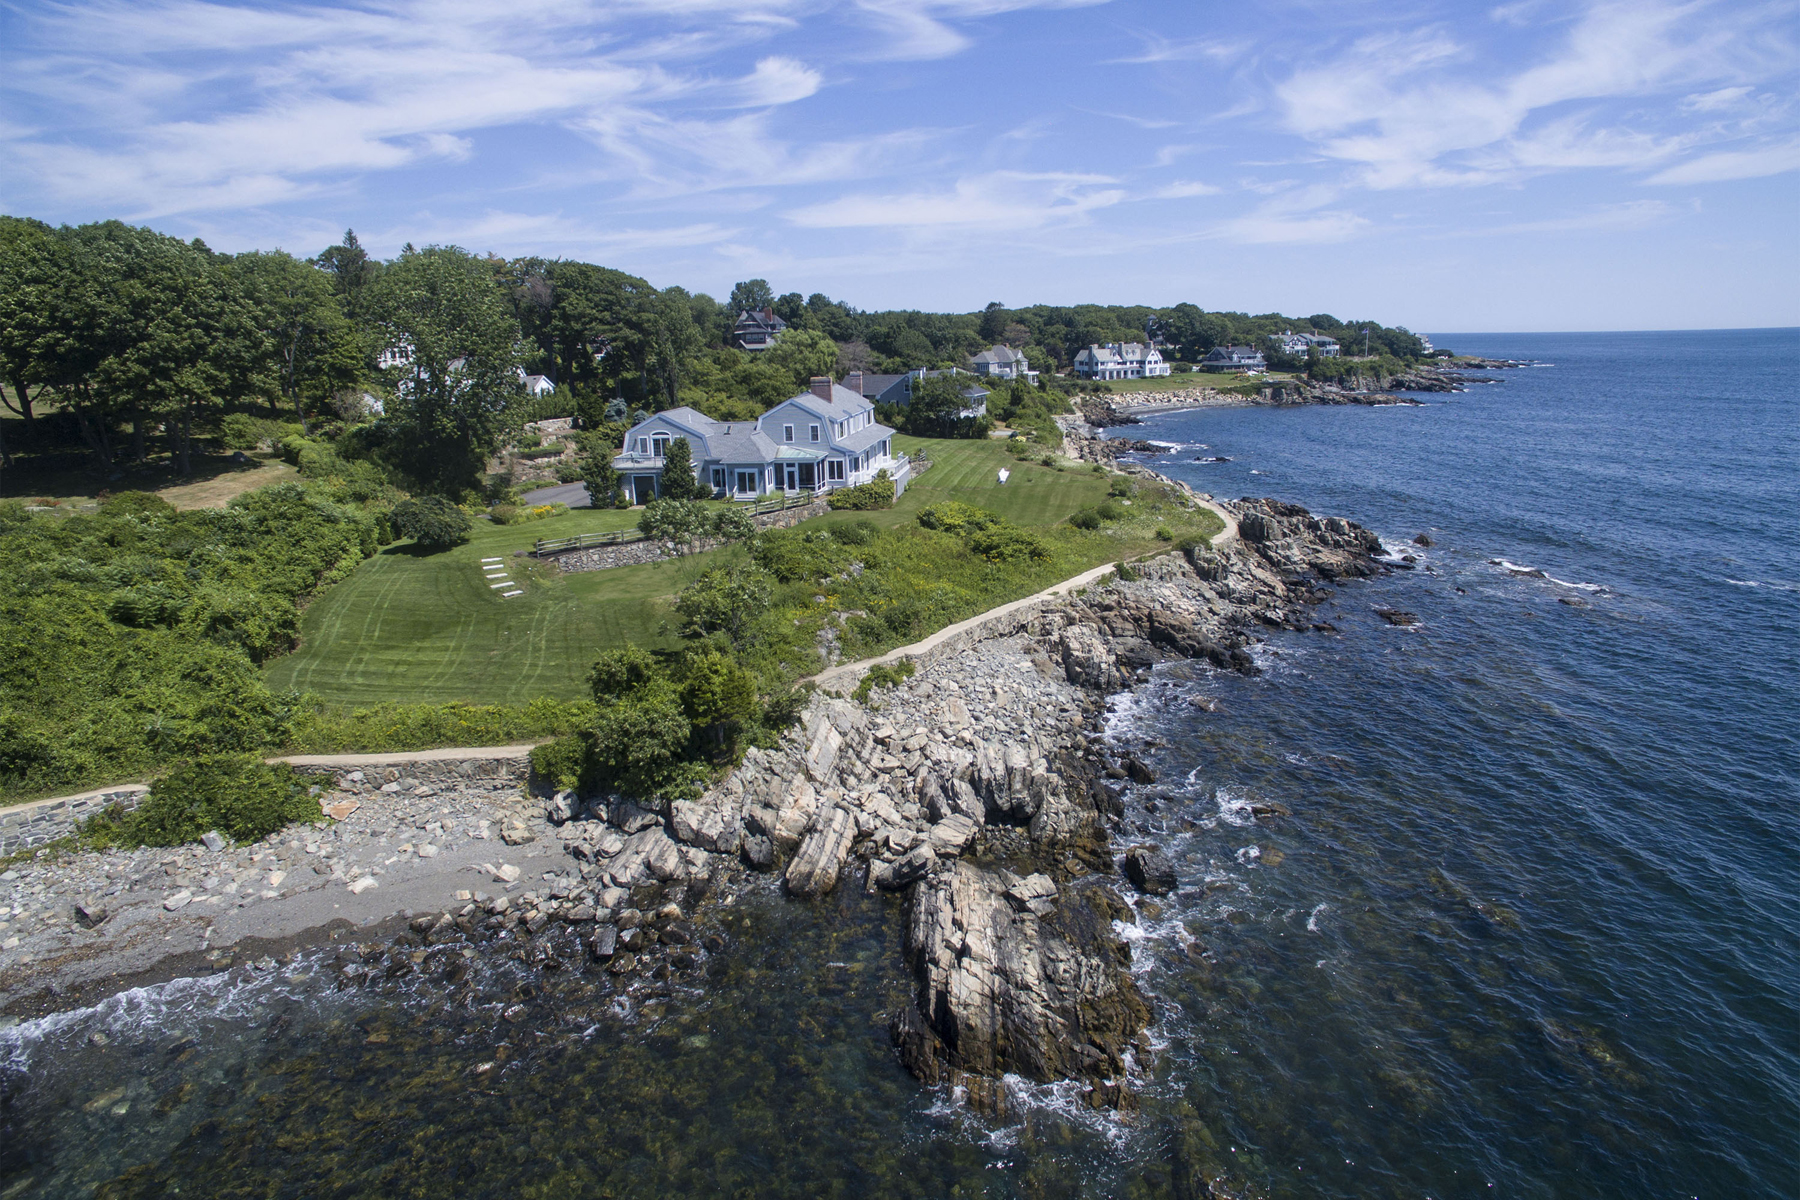 Single Family Home for Sale at 23 Aldis Lane York, Maine 03909 United States